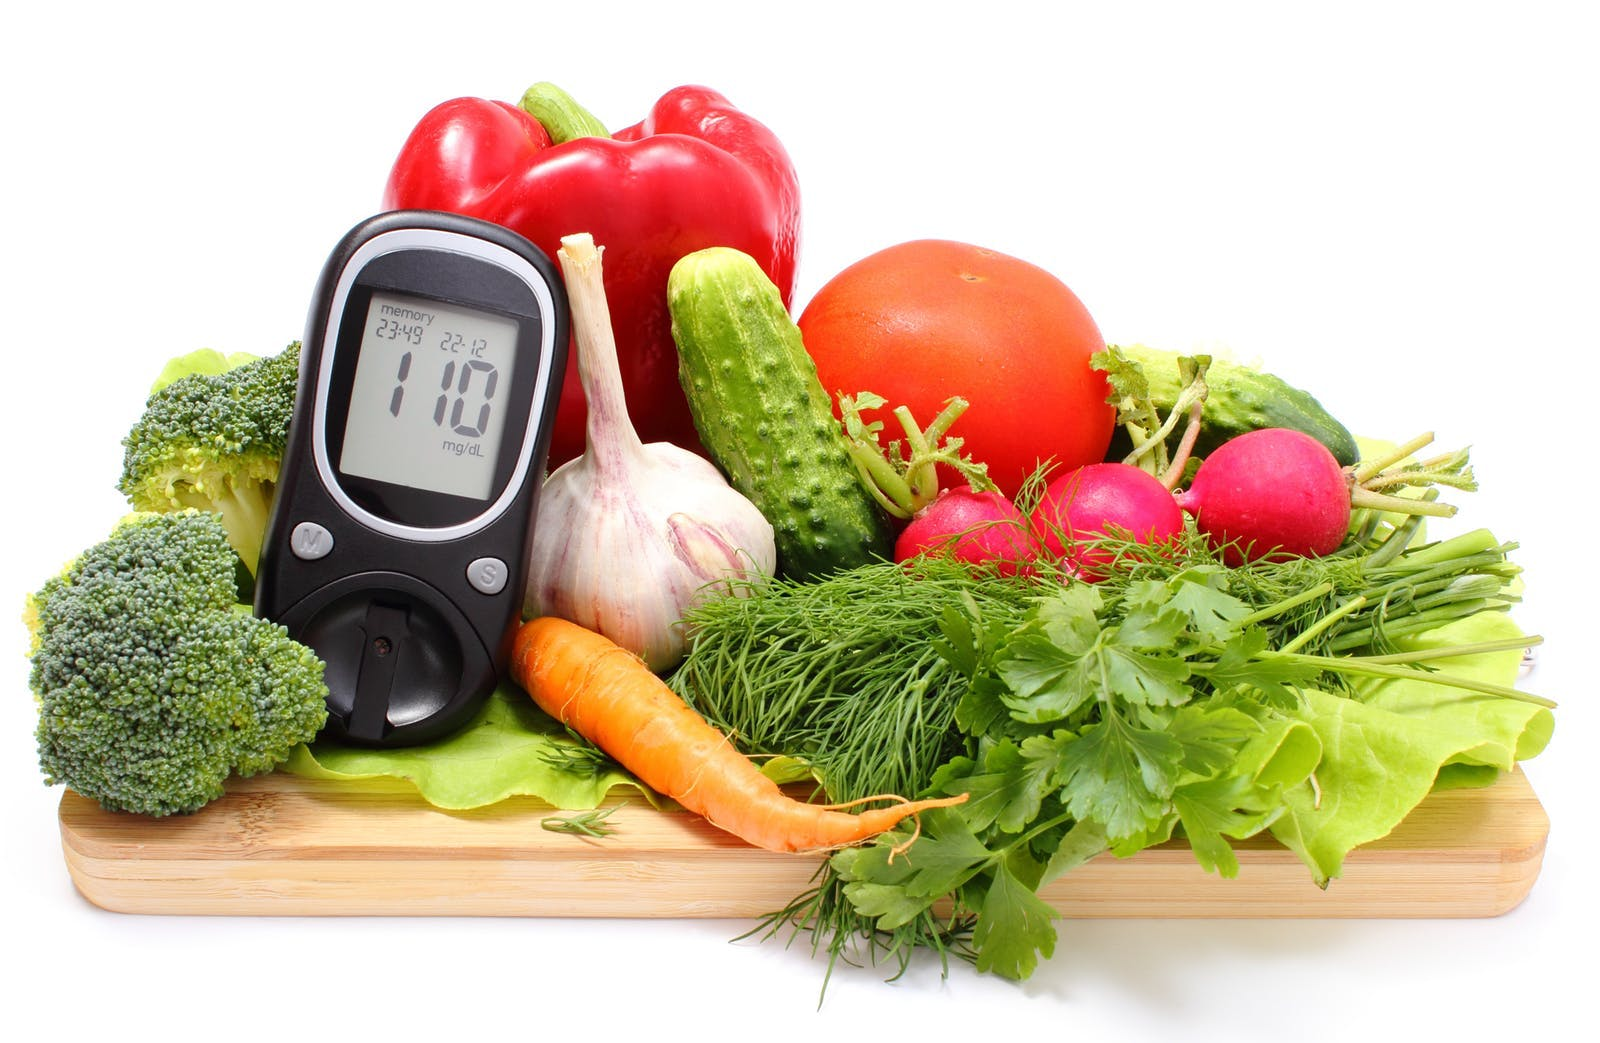 Glucometer and fresh vegetables on wooden cutting board